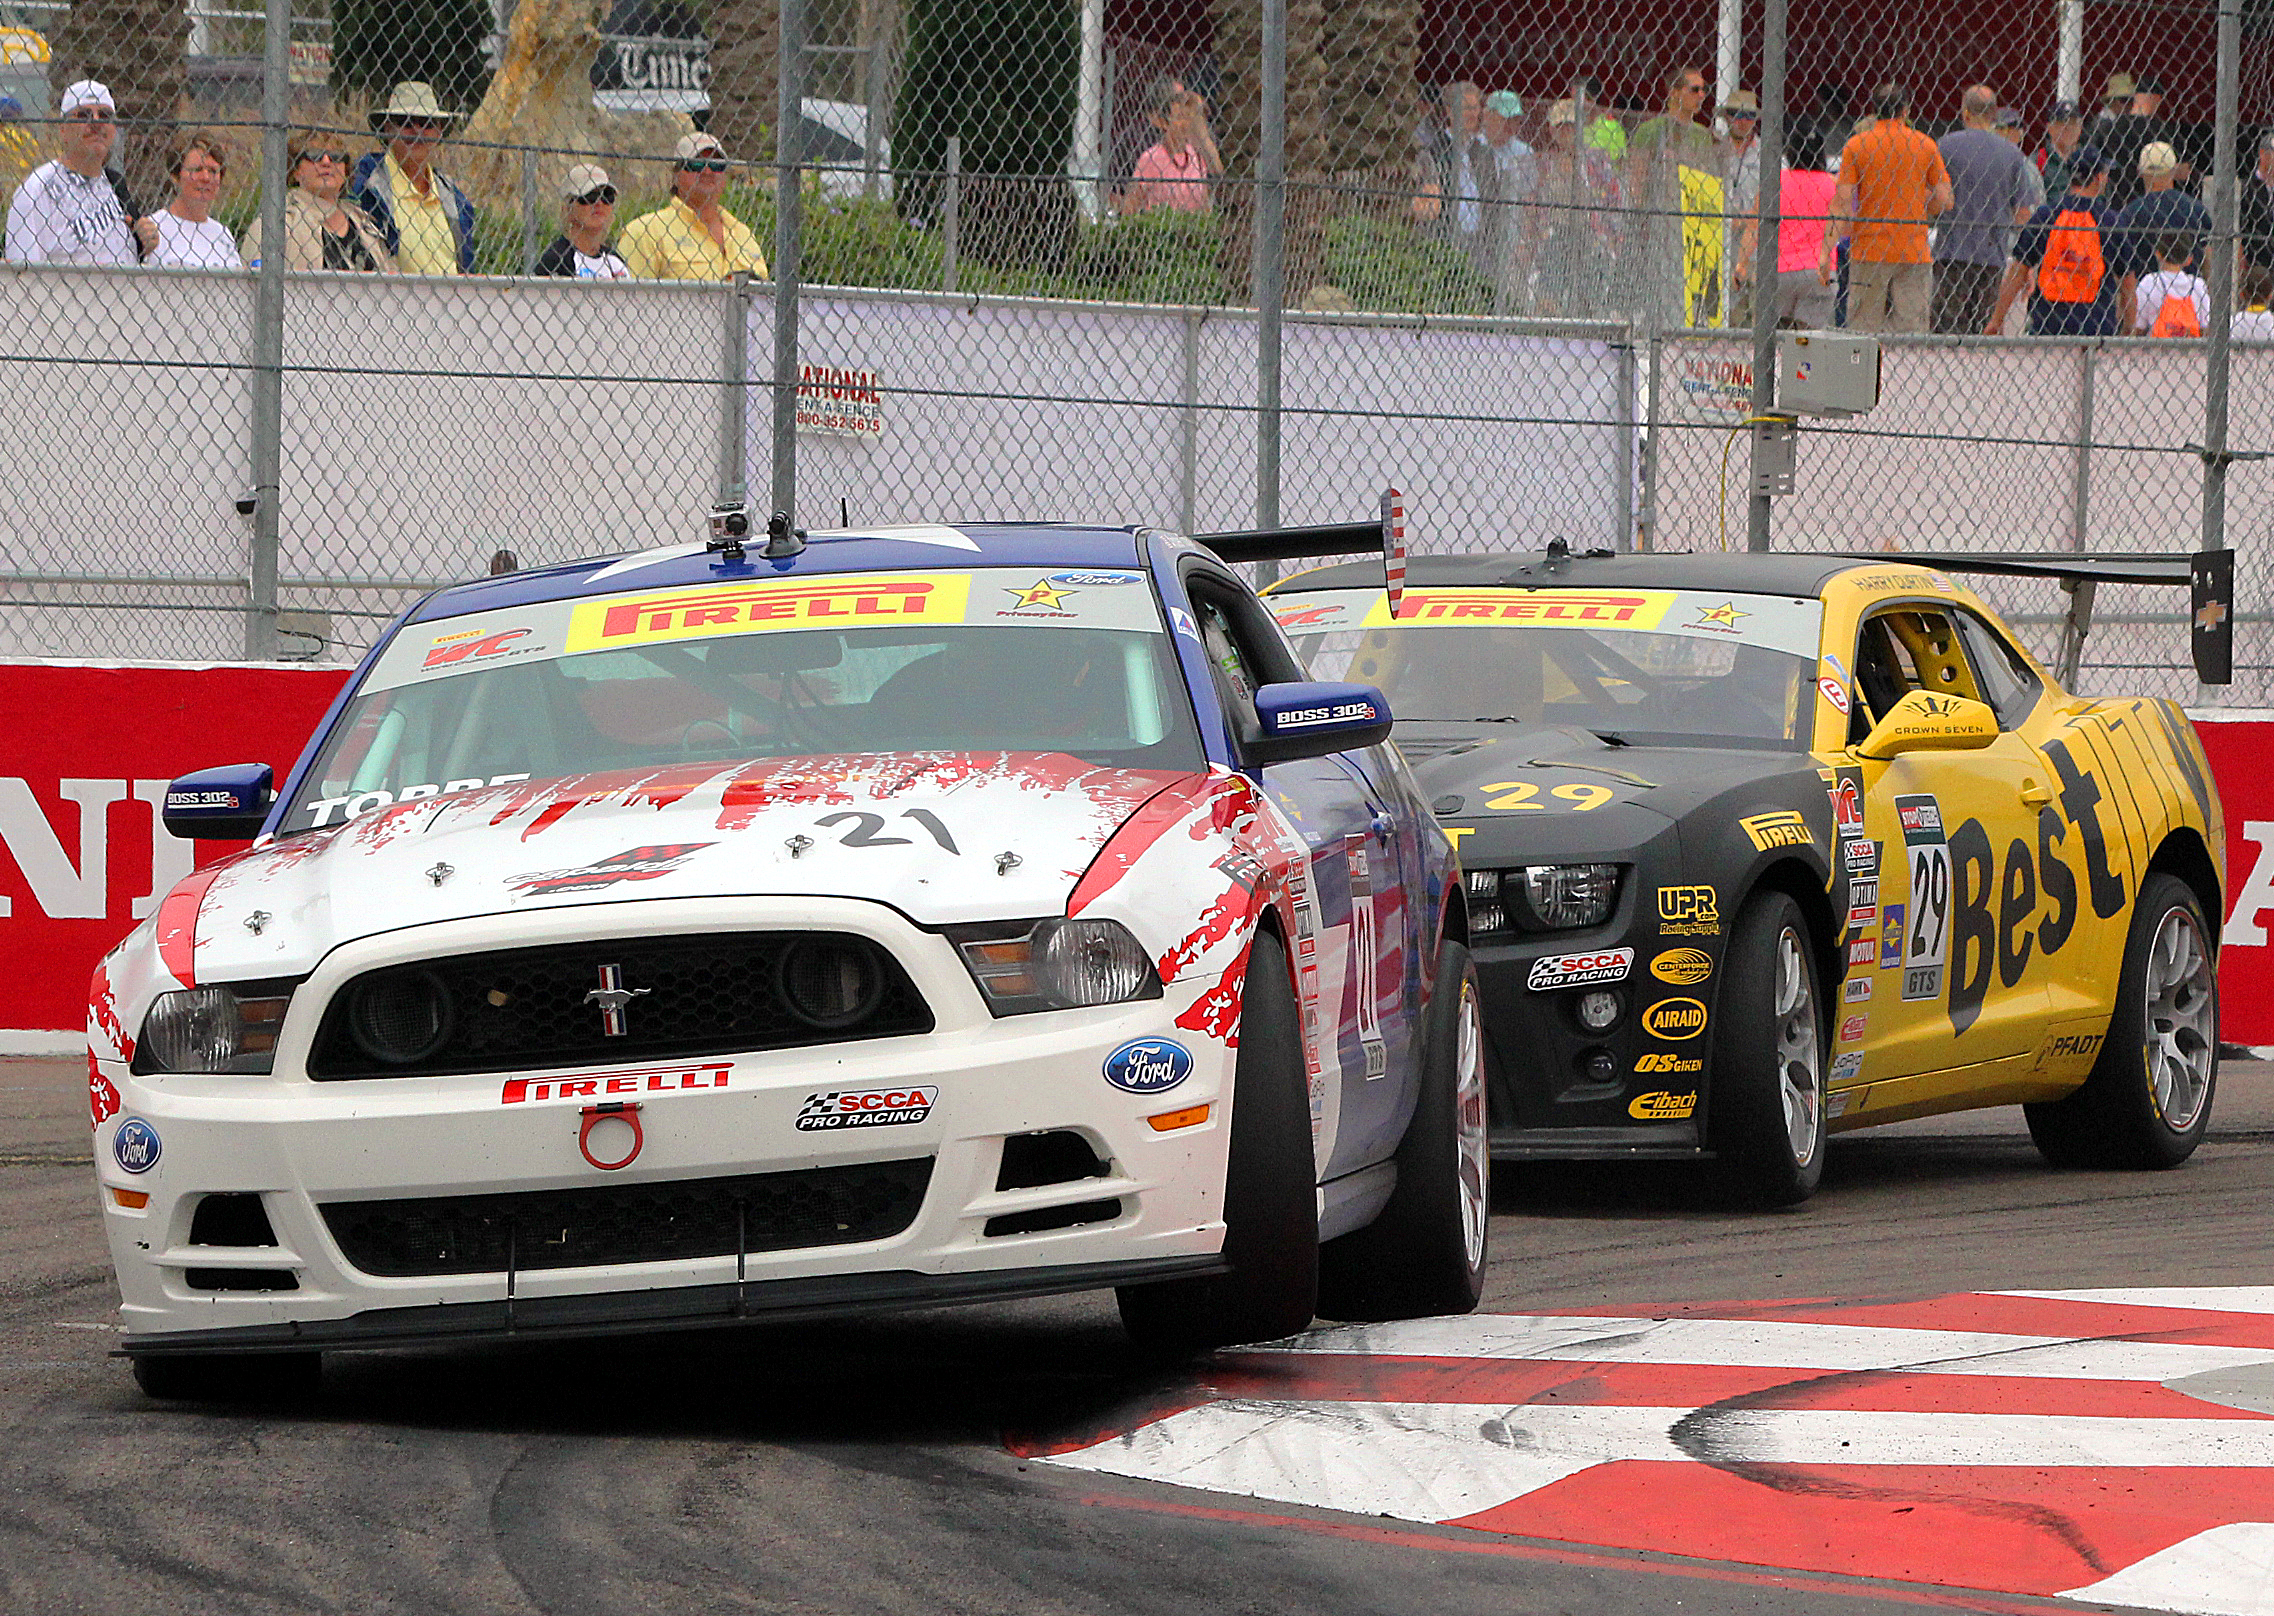 Pirelli World Challenge's GTS class is often a fight between American muscle car icons, the Ford Mustang and the Chevrolet Camaro. (Chris Jasurek/Epoch Times)